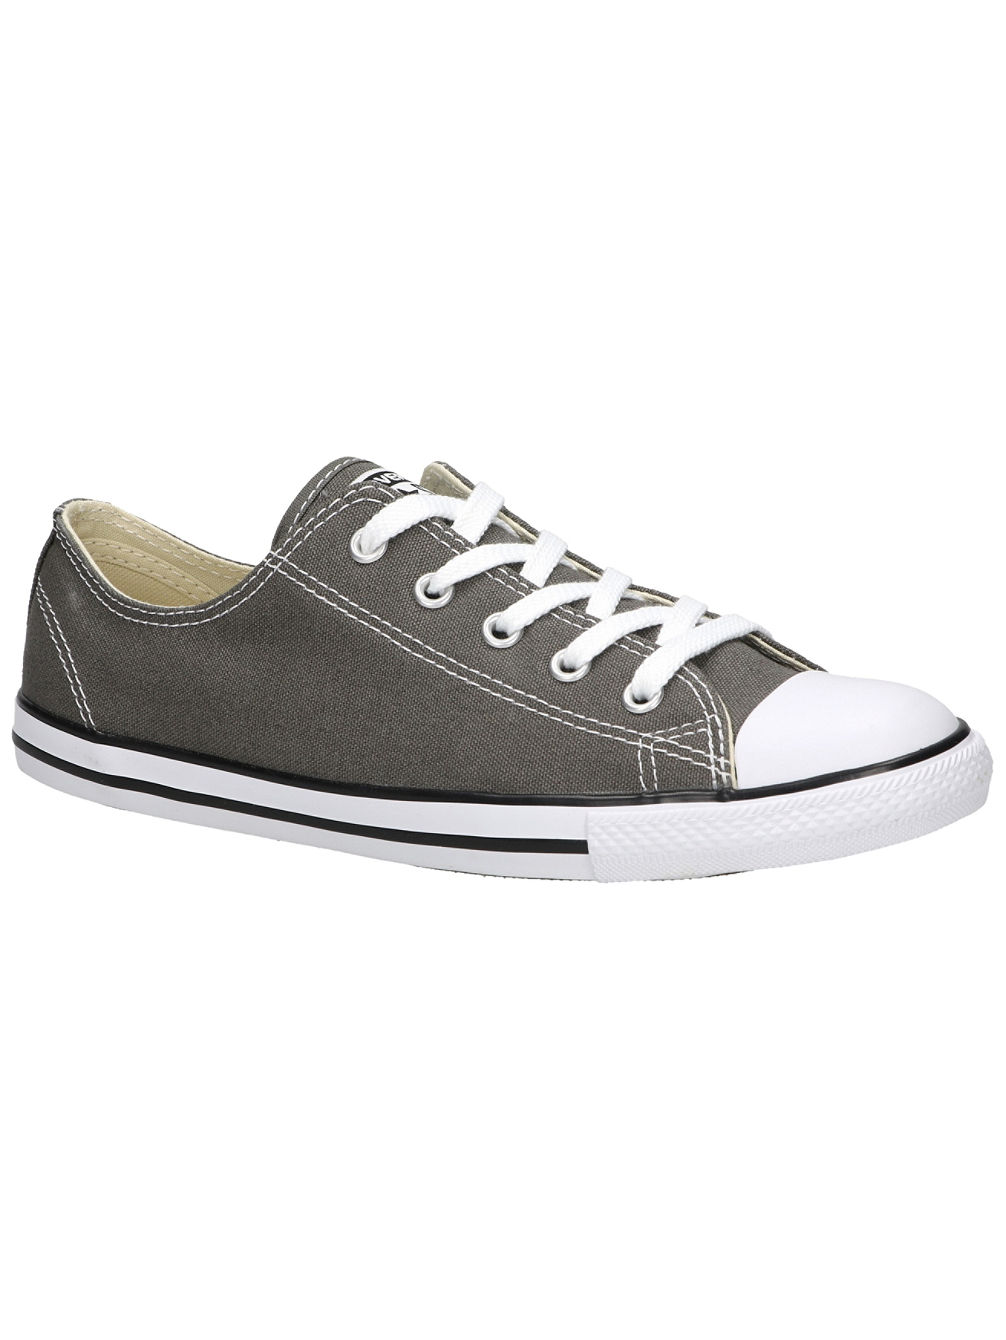 1648a21ad4b1 Buy Converse Chuck Taylor All Star Dainty OX Sneakers online at Blue ...